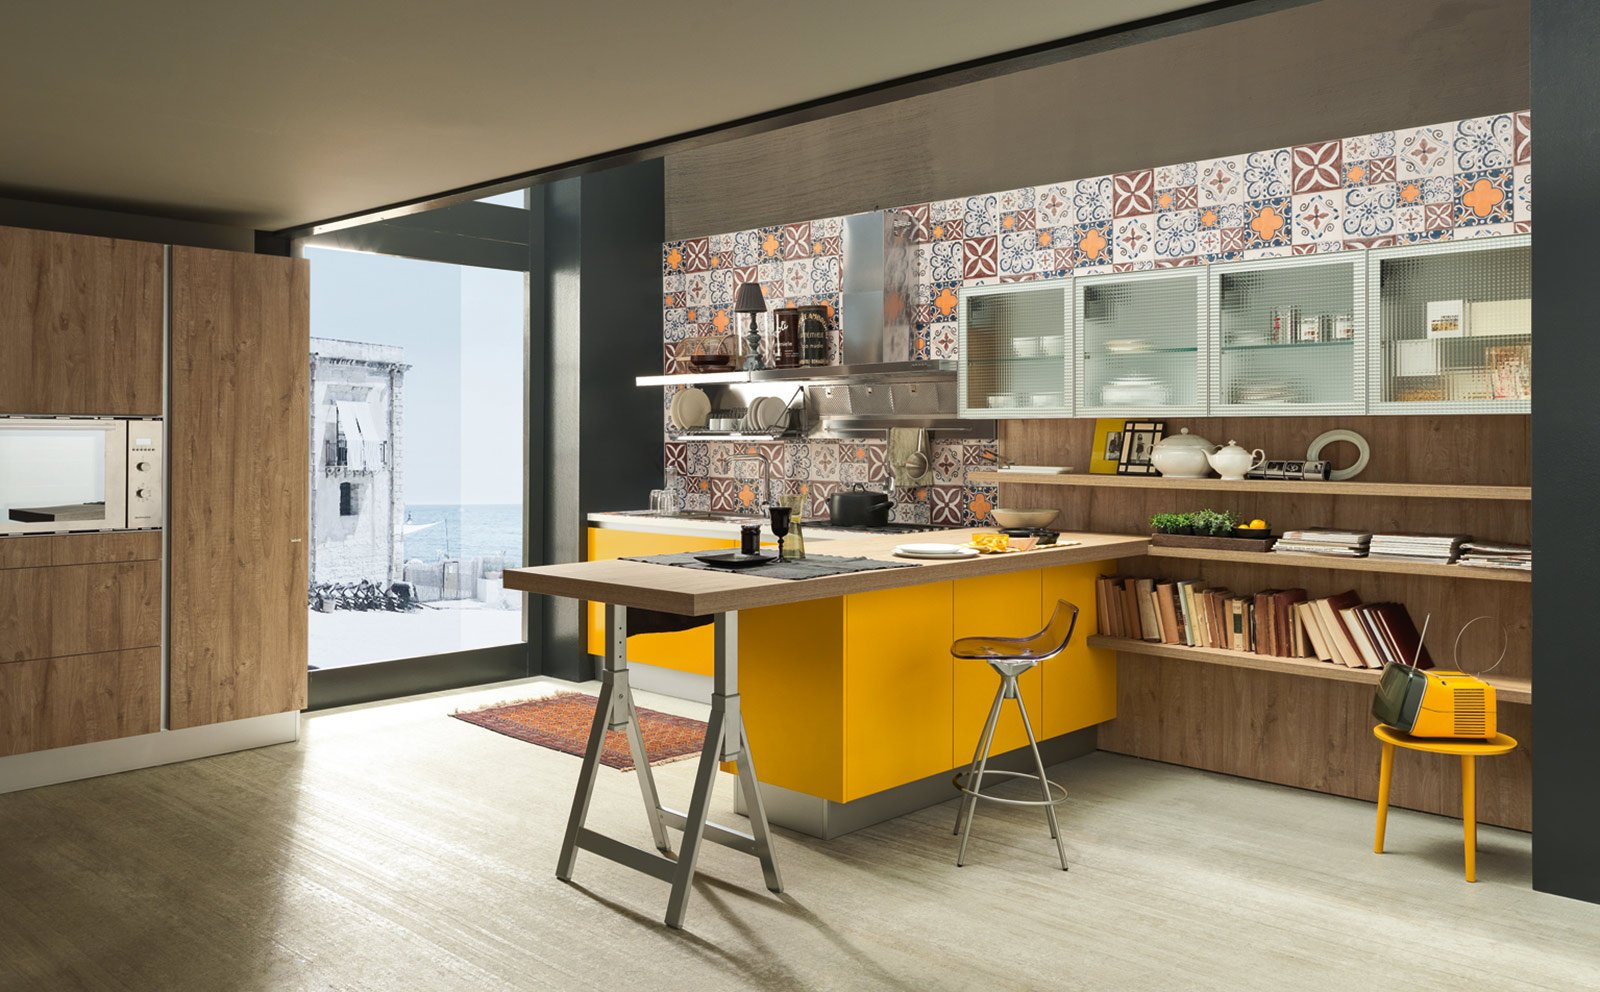 Cucine Moderne In Legno Naturale. Latest Your Email Address Will ...